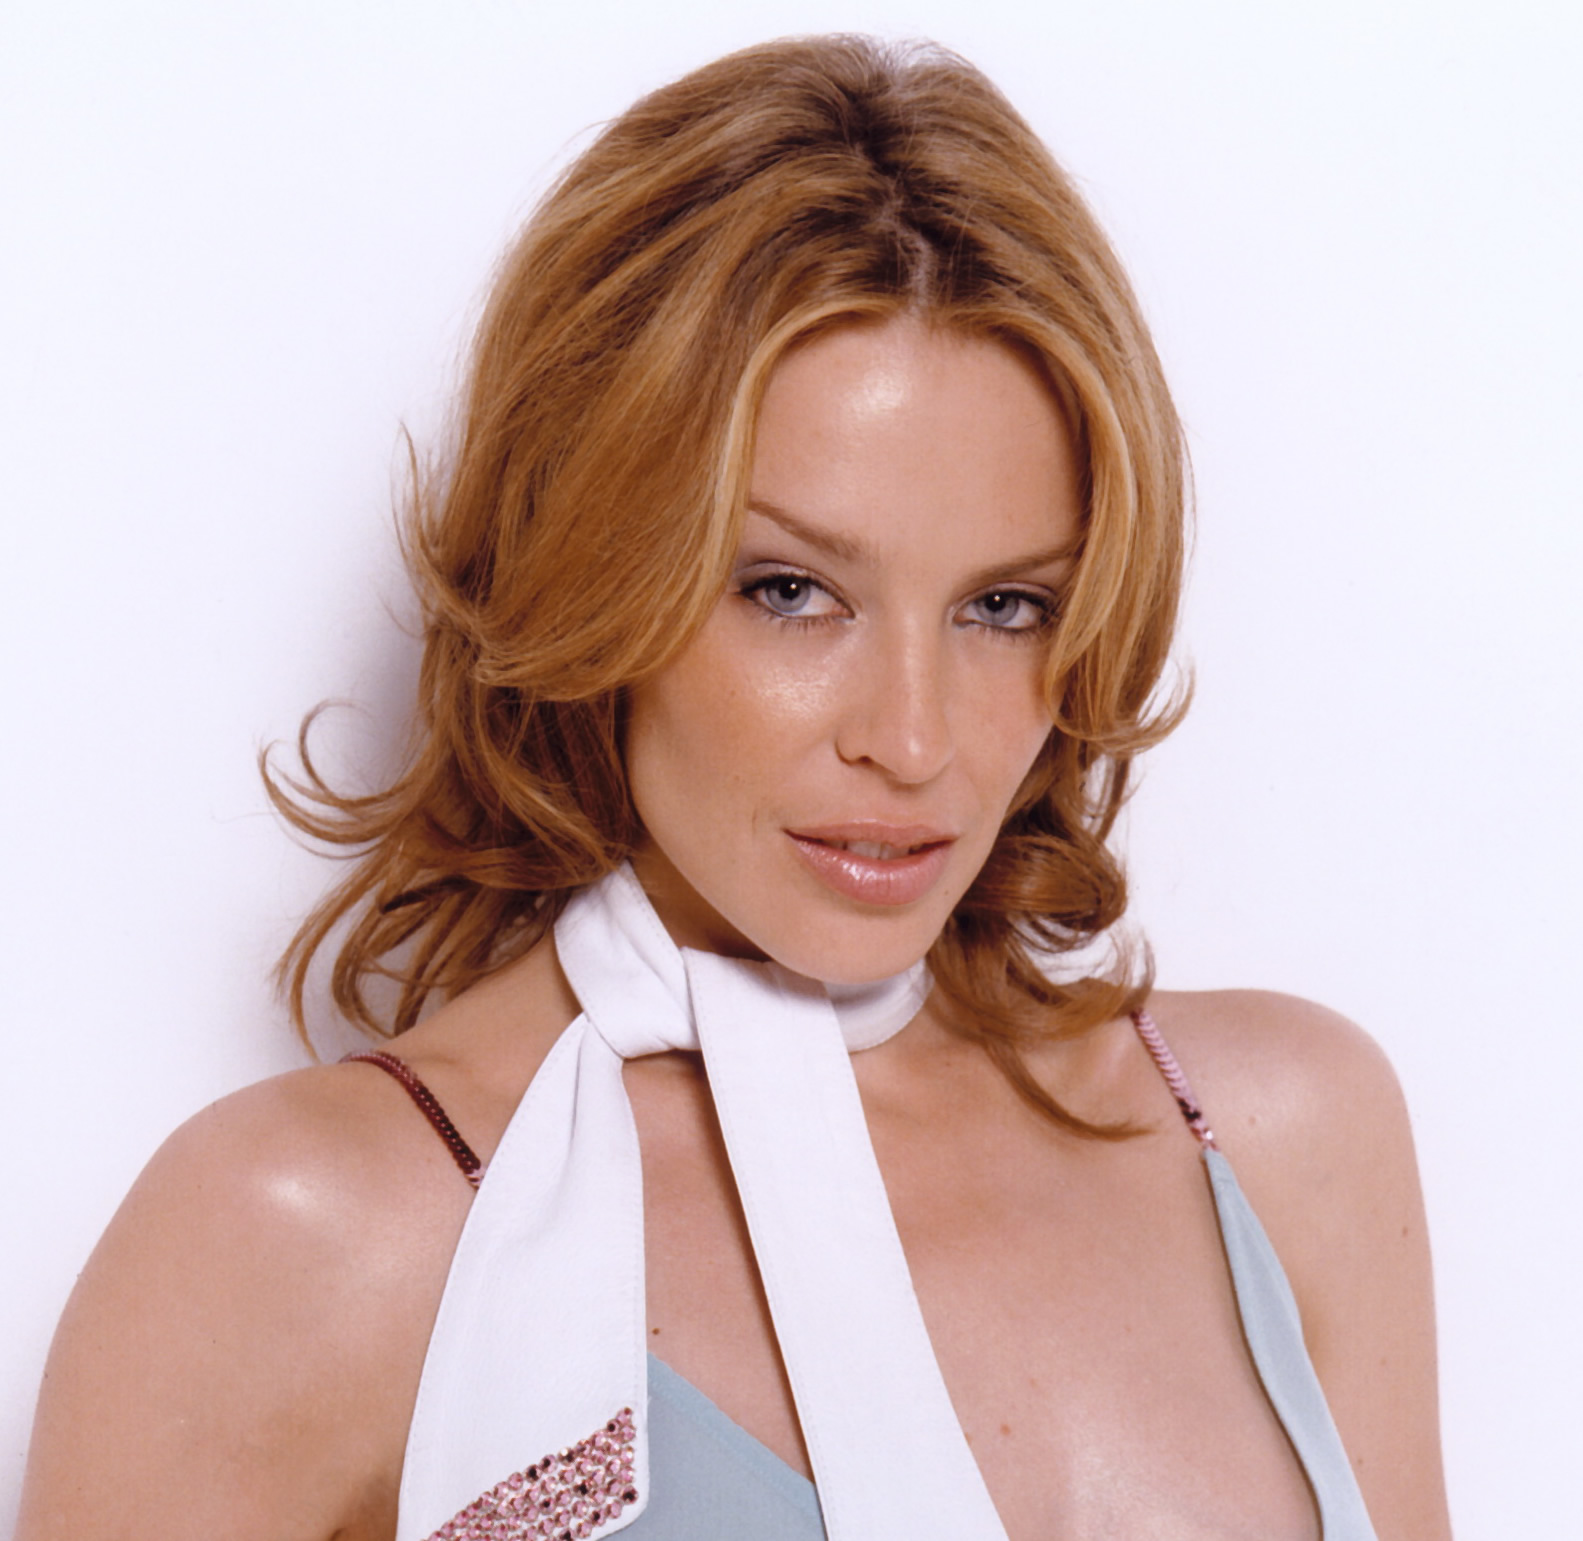 Actress Kylie Minogue - age: 52